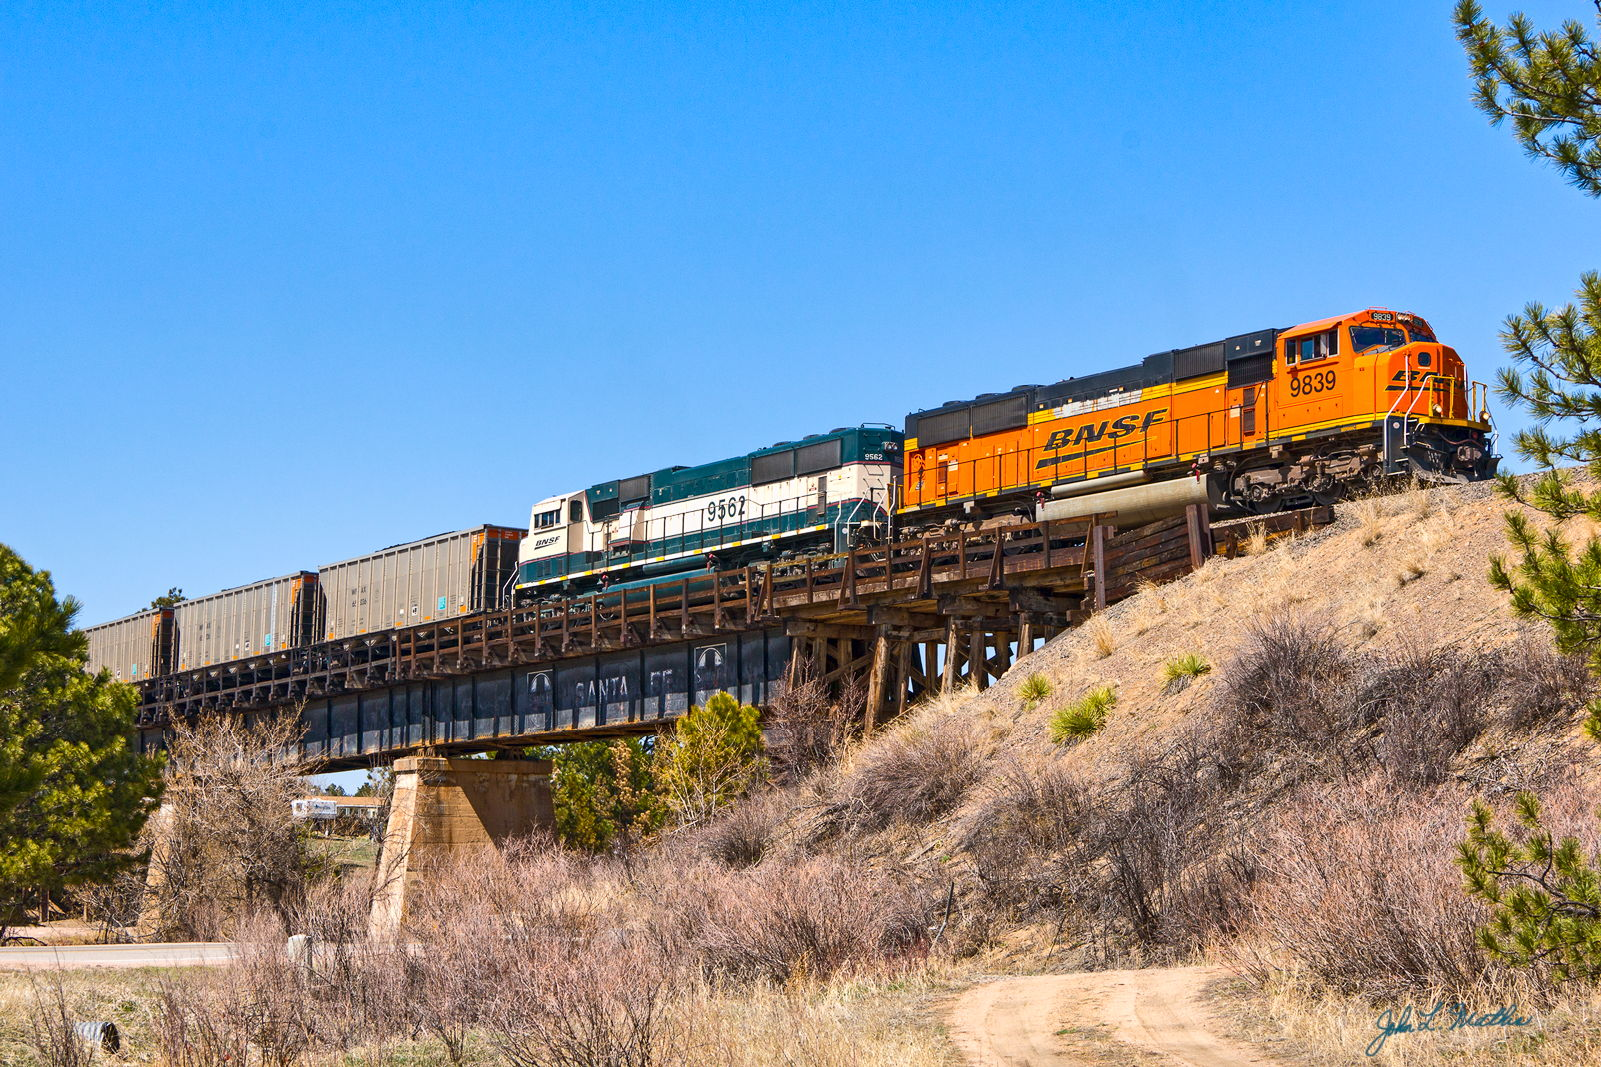 BNSF 9839 crosses the trestle at Larkspur, CO on April 27, 2013.